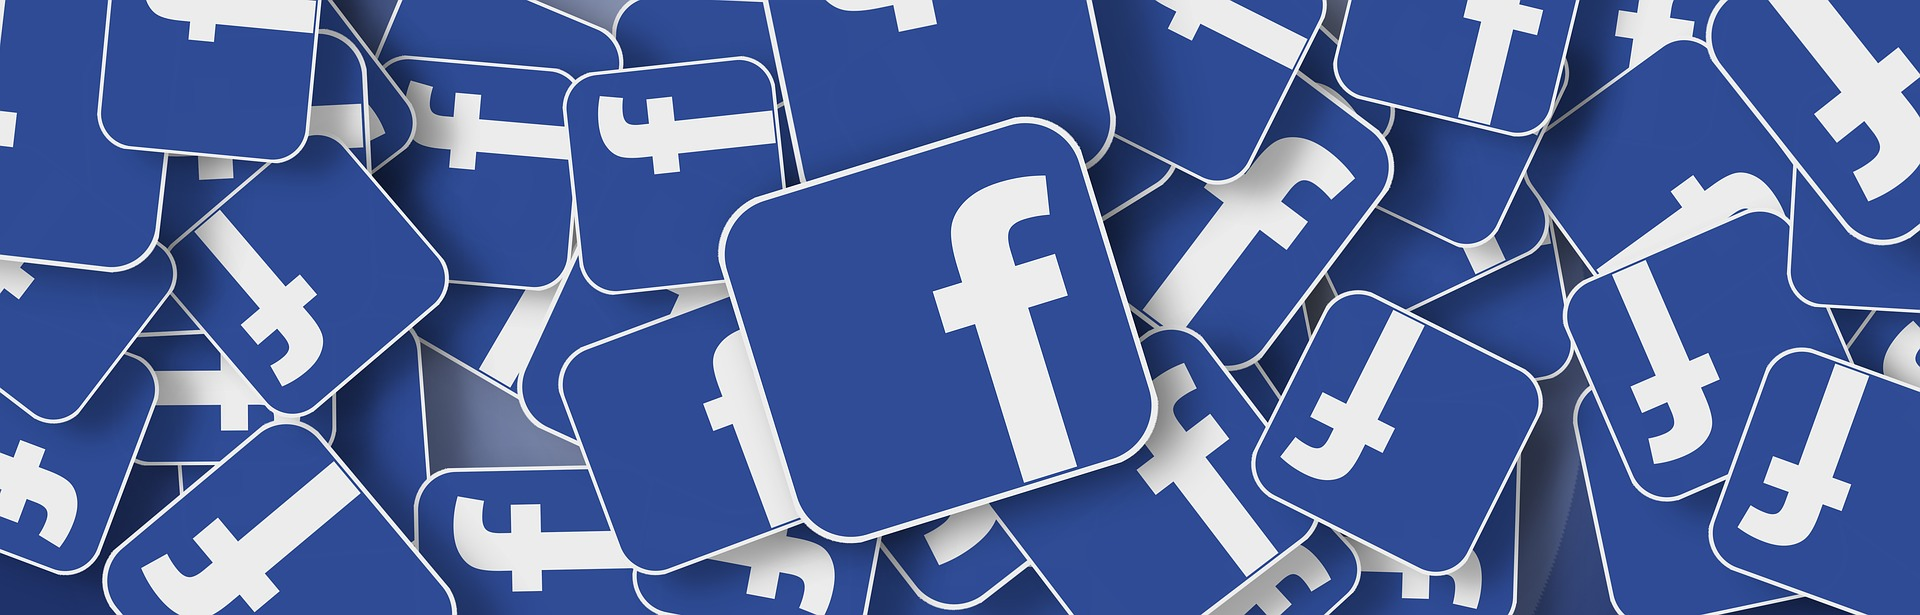 Facebook-Account, Facebook, Eltern